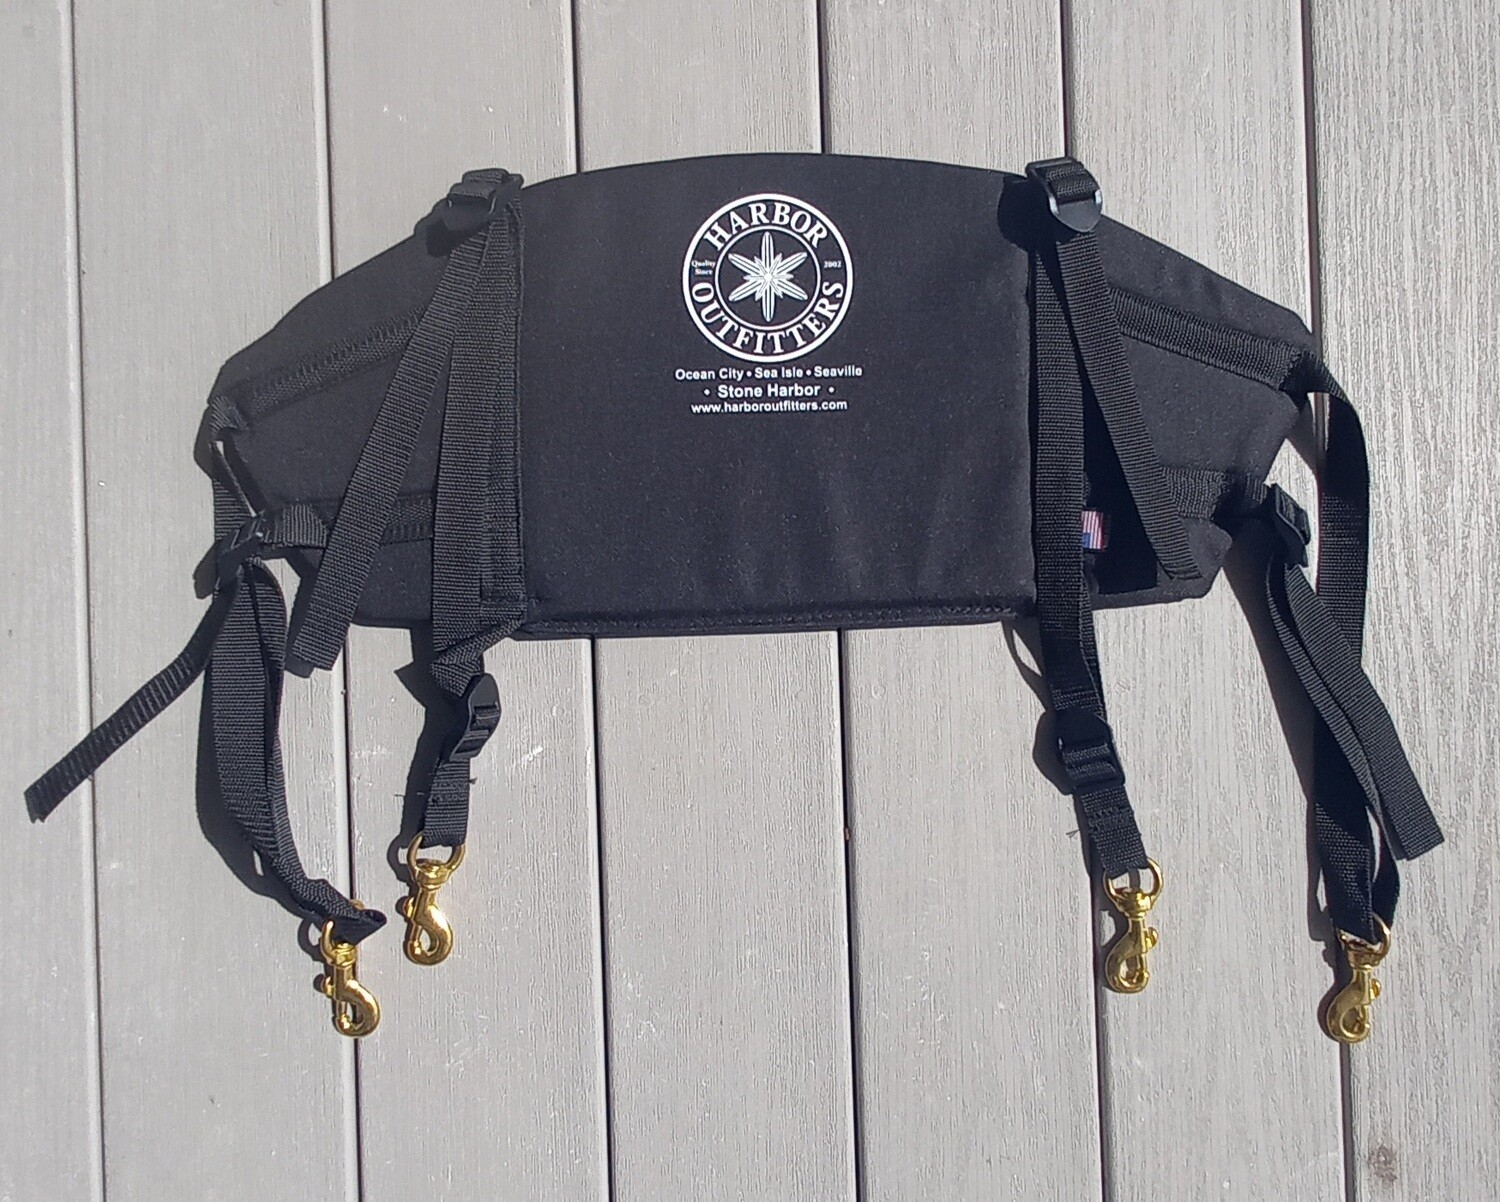 Harbor Outfitters Standard Kayak Seat back